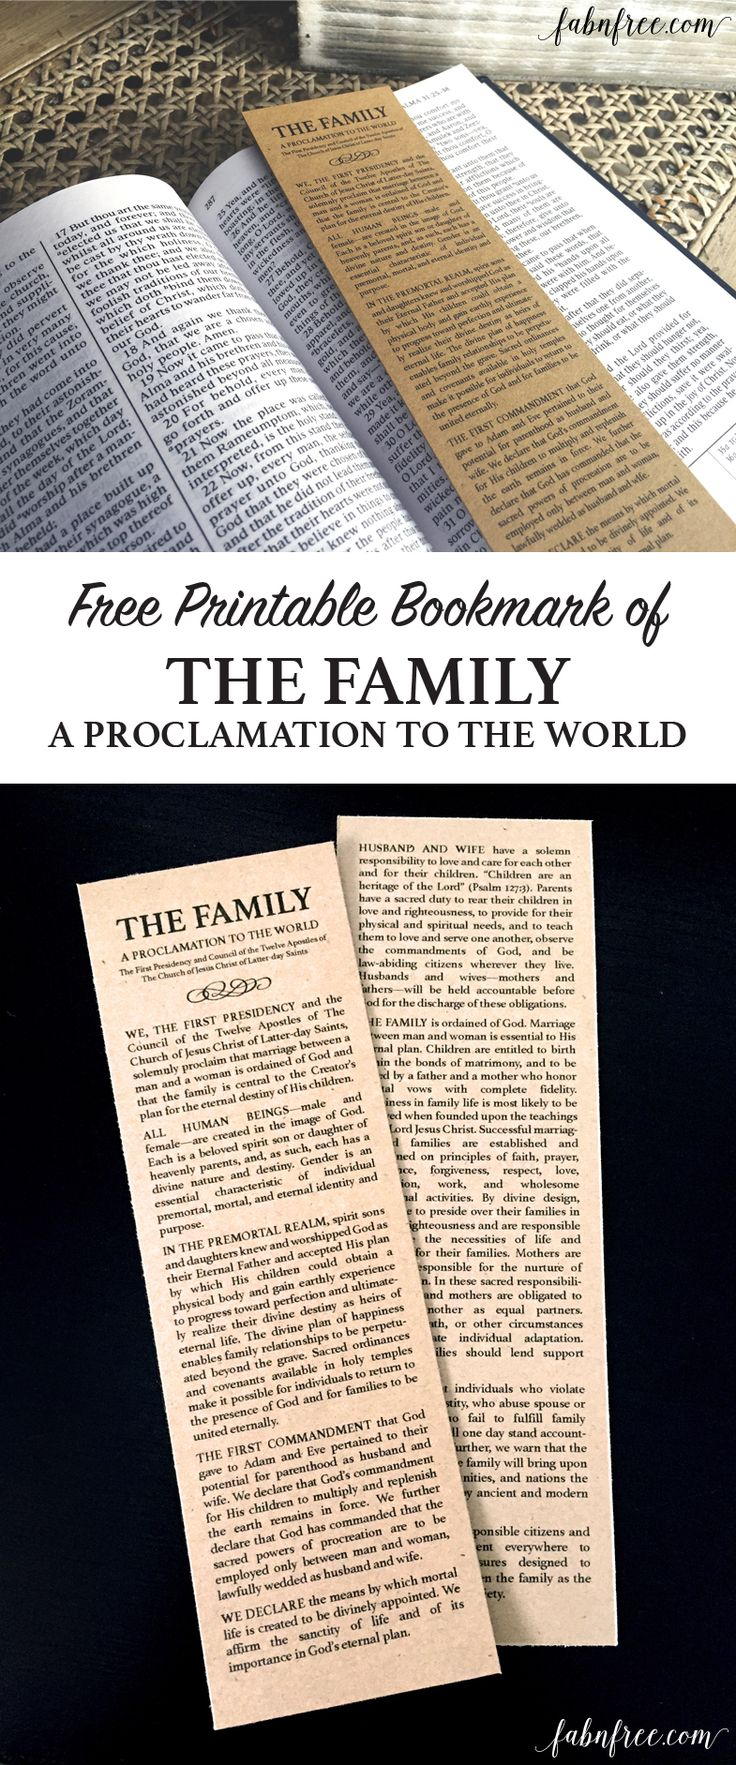 Free Printable Bookmark - The Family: A Proclamation to the World  //  fabnfree.com